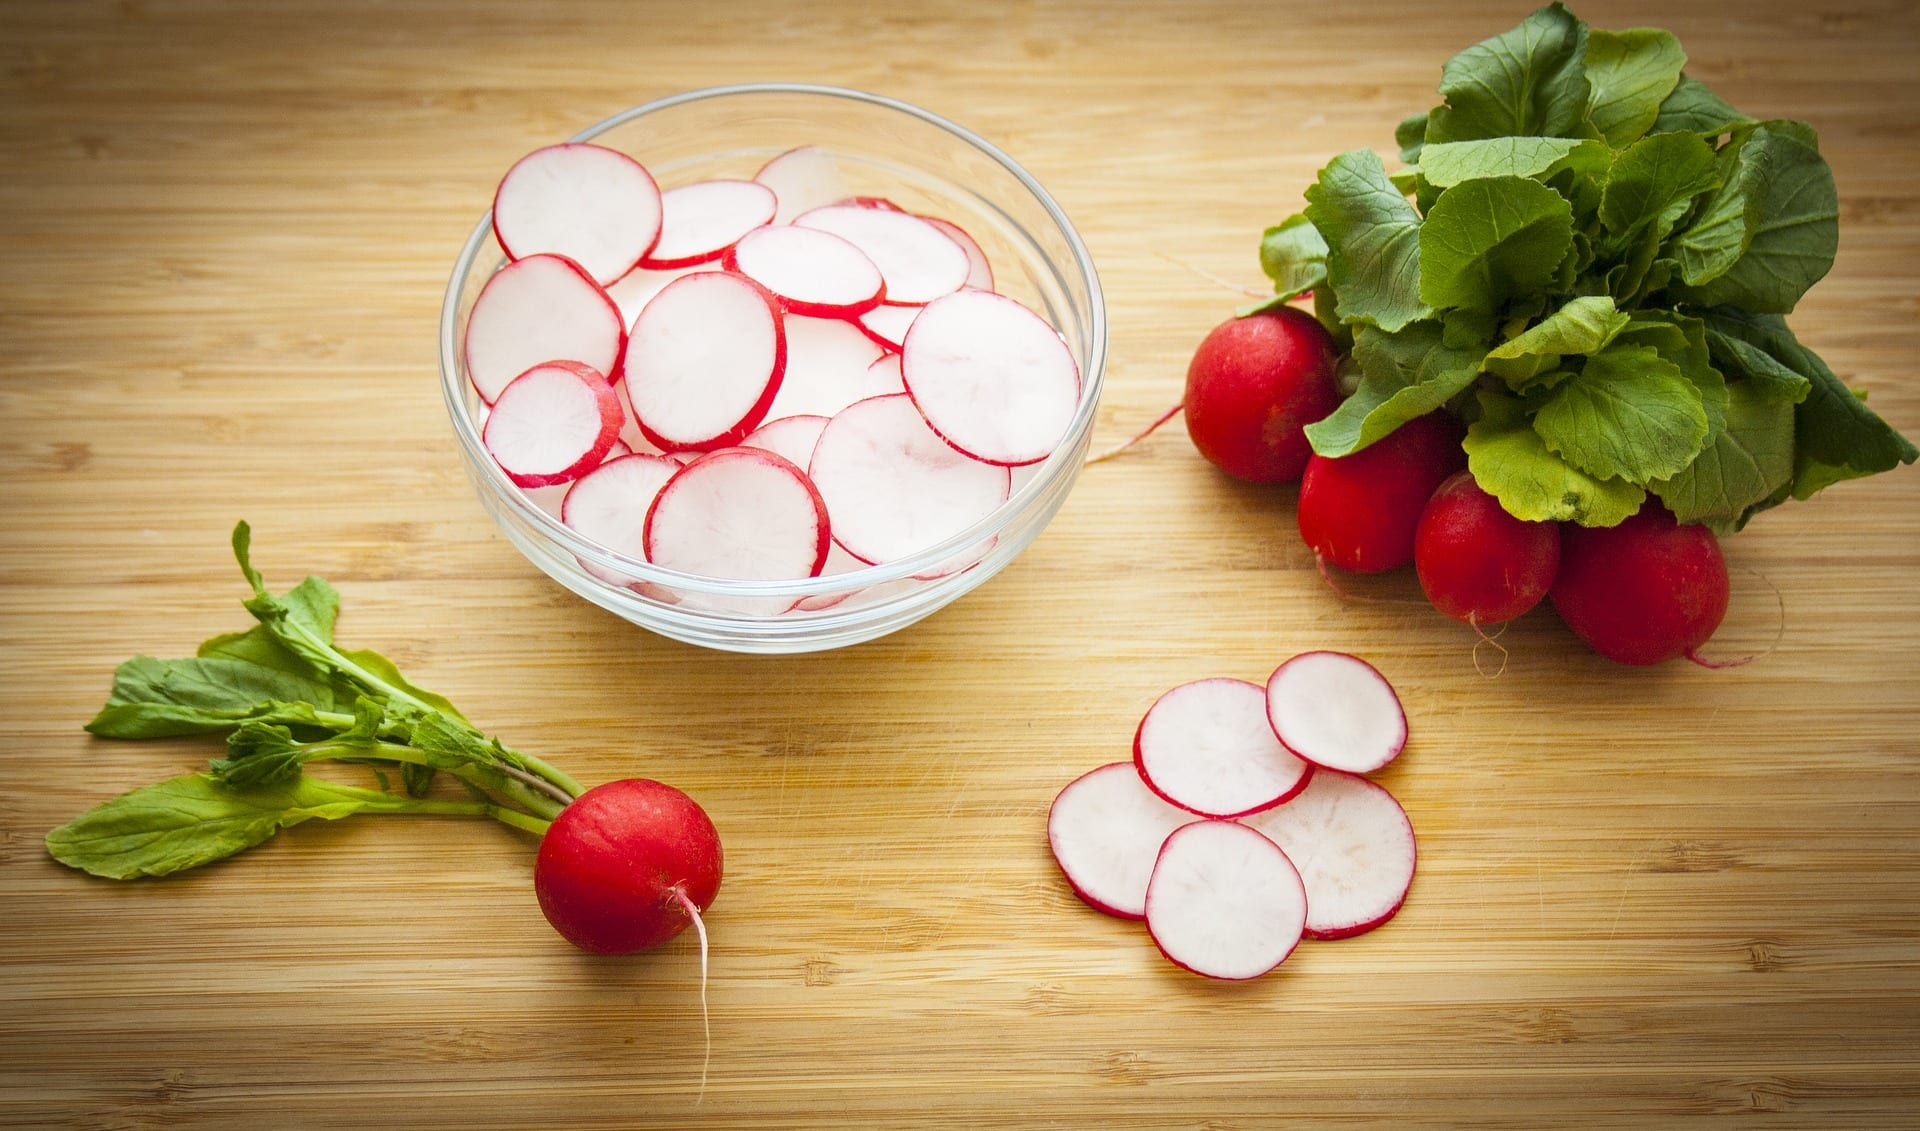 How-To Guide for Growing Radishes in Containers 1